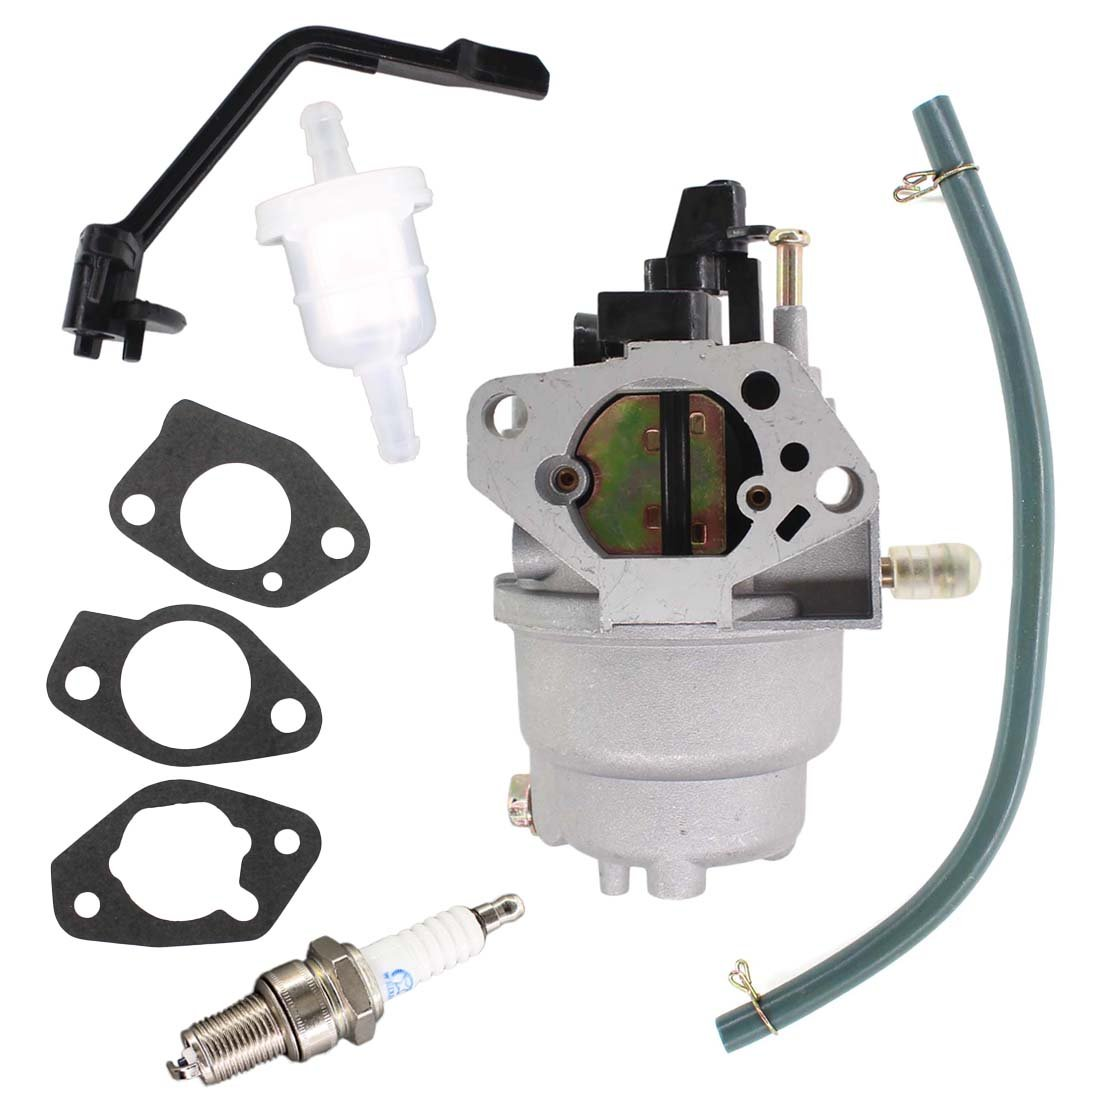 USPEEDA Carburetor For Homelite PowerStroke 5000W 6000W 7500 Watt Generator 16100-Z191110 by USPEEDA